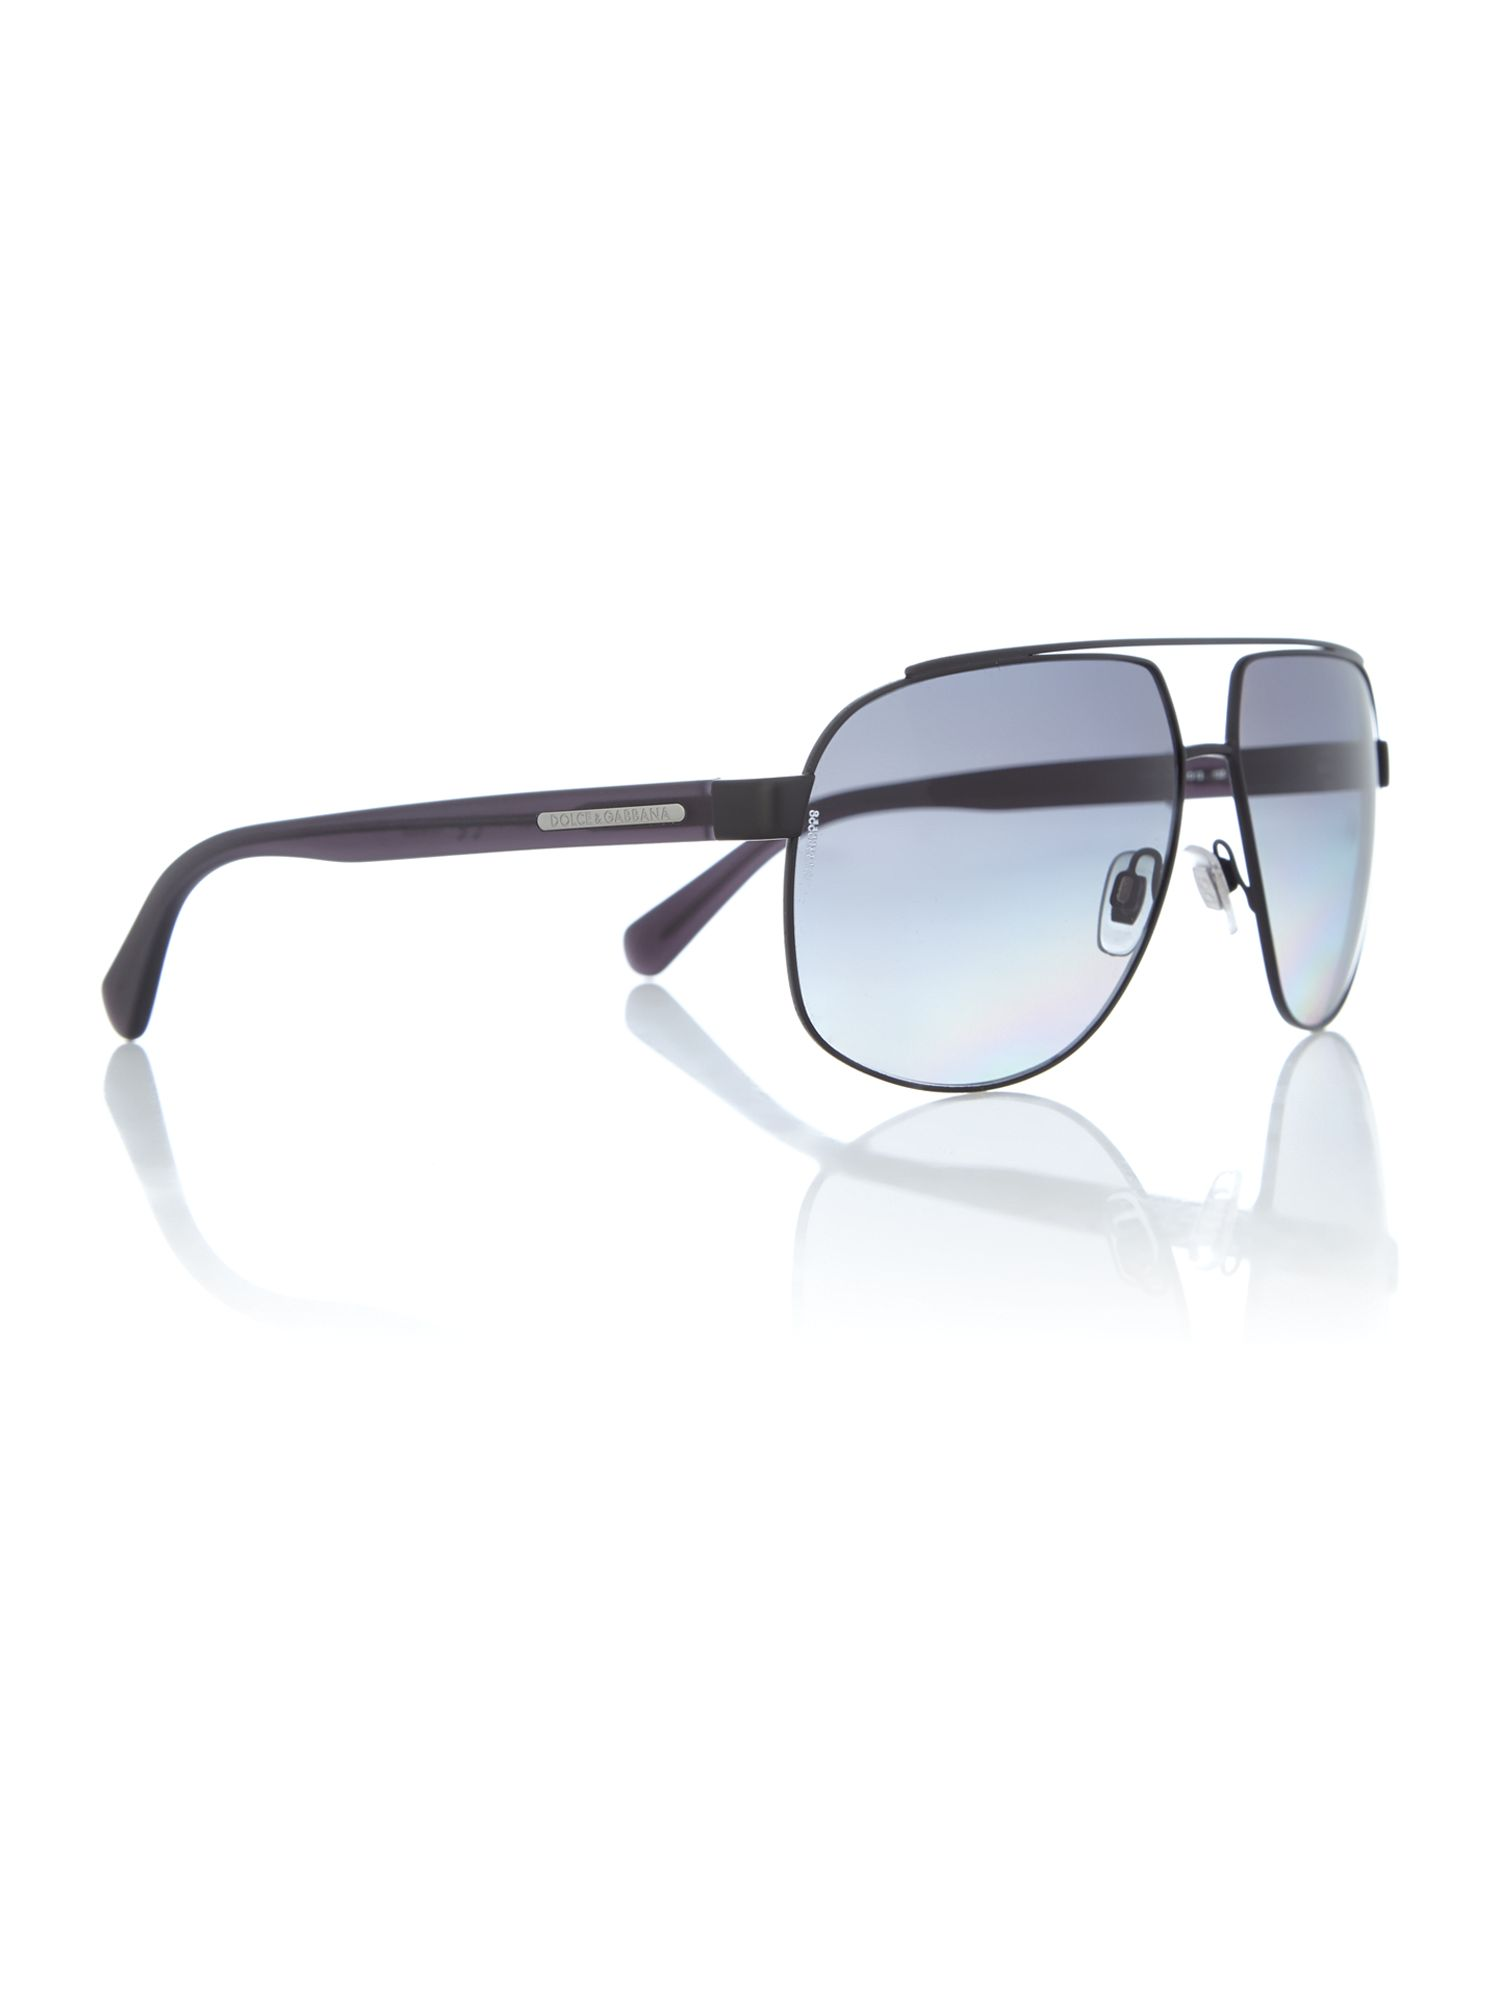 Dg2138 men`s irregular sunglasses